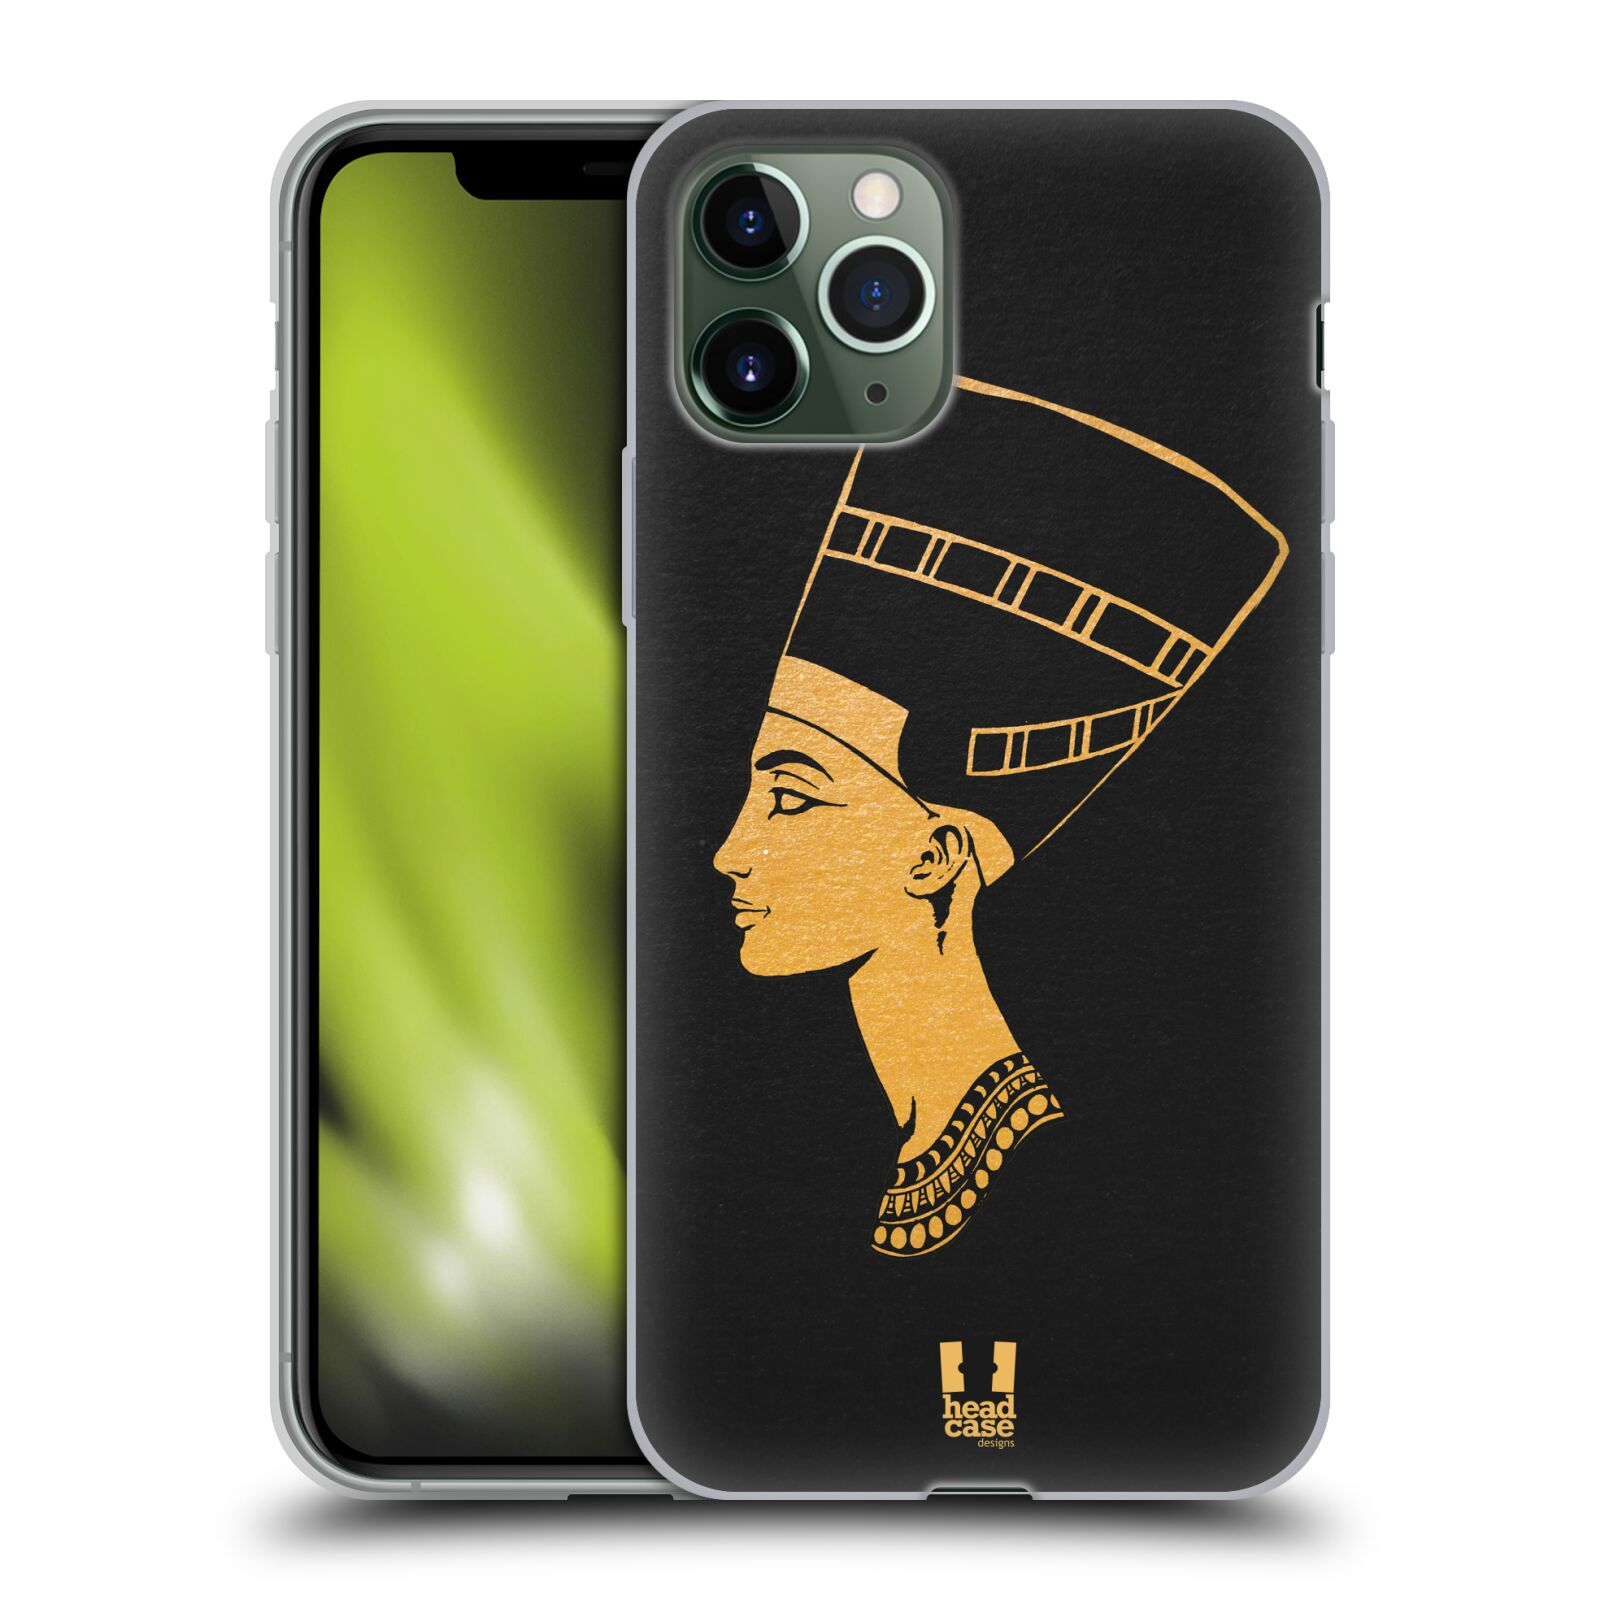 apple iphone xs pouzdro | Silikonové pouzdro na mobil Apple iPhone 11 Pro - Head Case - EGYPT NEFERTITI